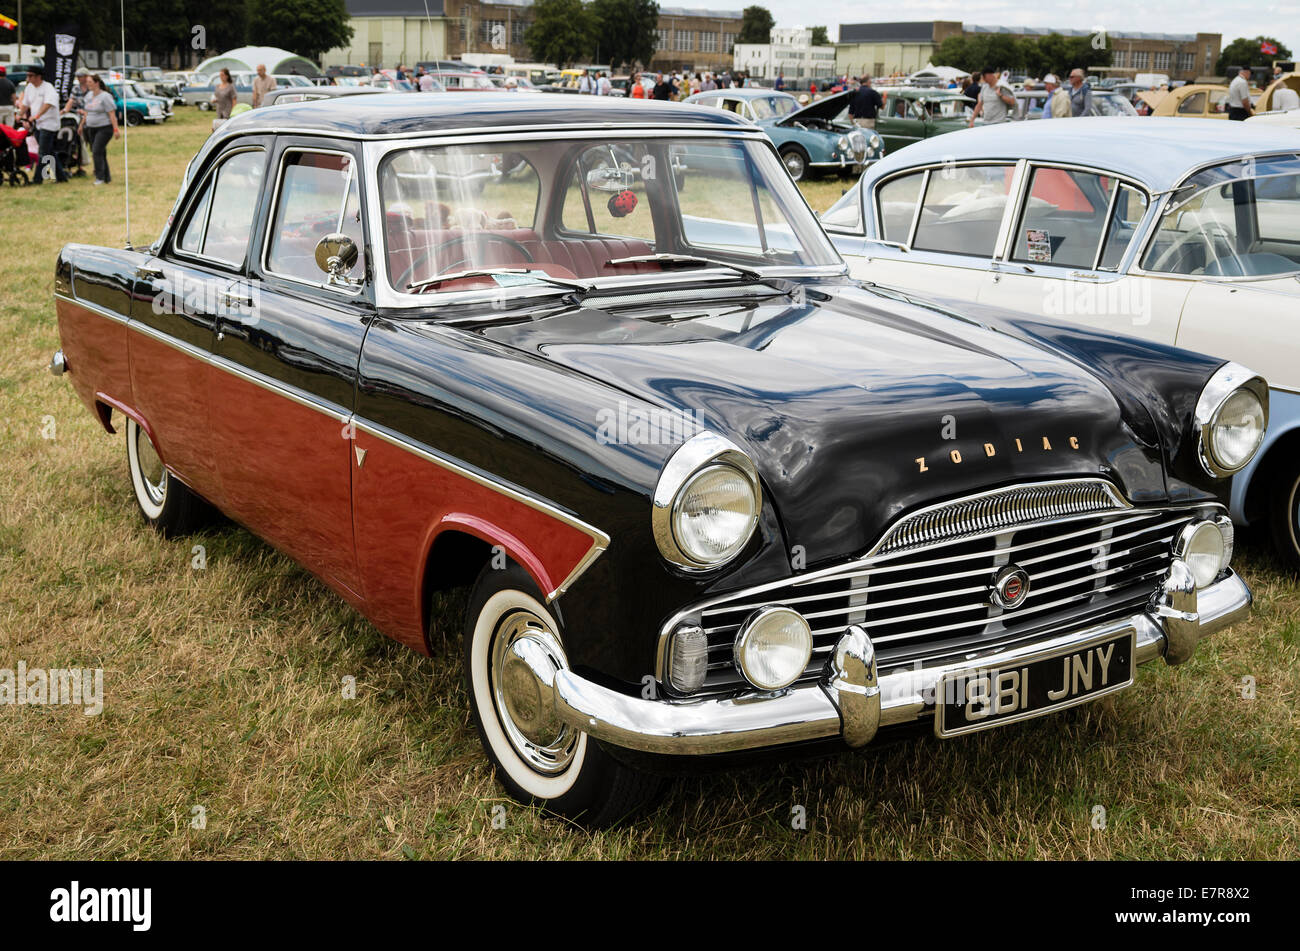 FORD ZEPHYR ZODIAC saloon car from the 1950s at an English show & FORD ZEPHYR ZODIAC saloon car from the 1950s at an English show ... markmcfarlin.com